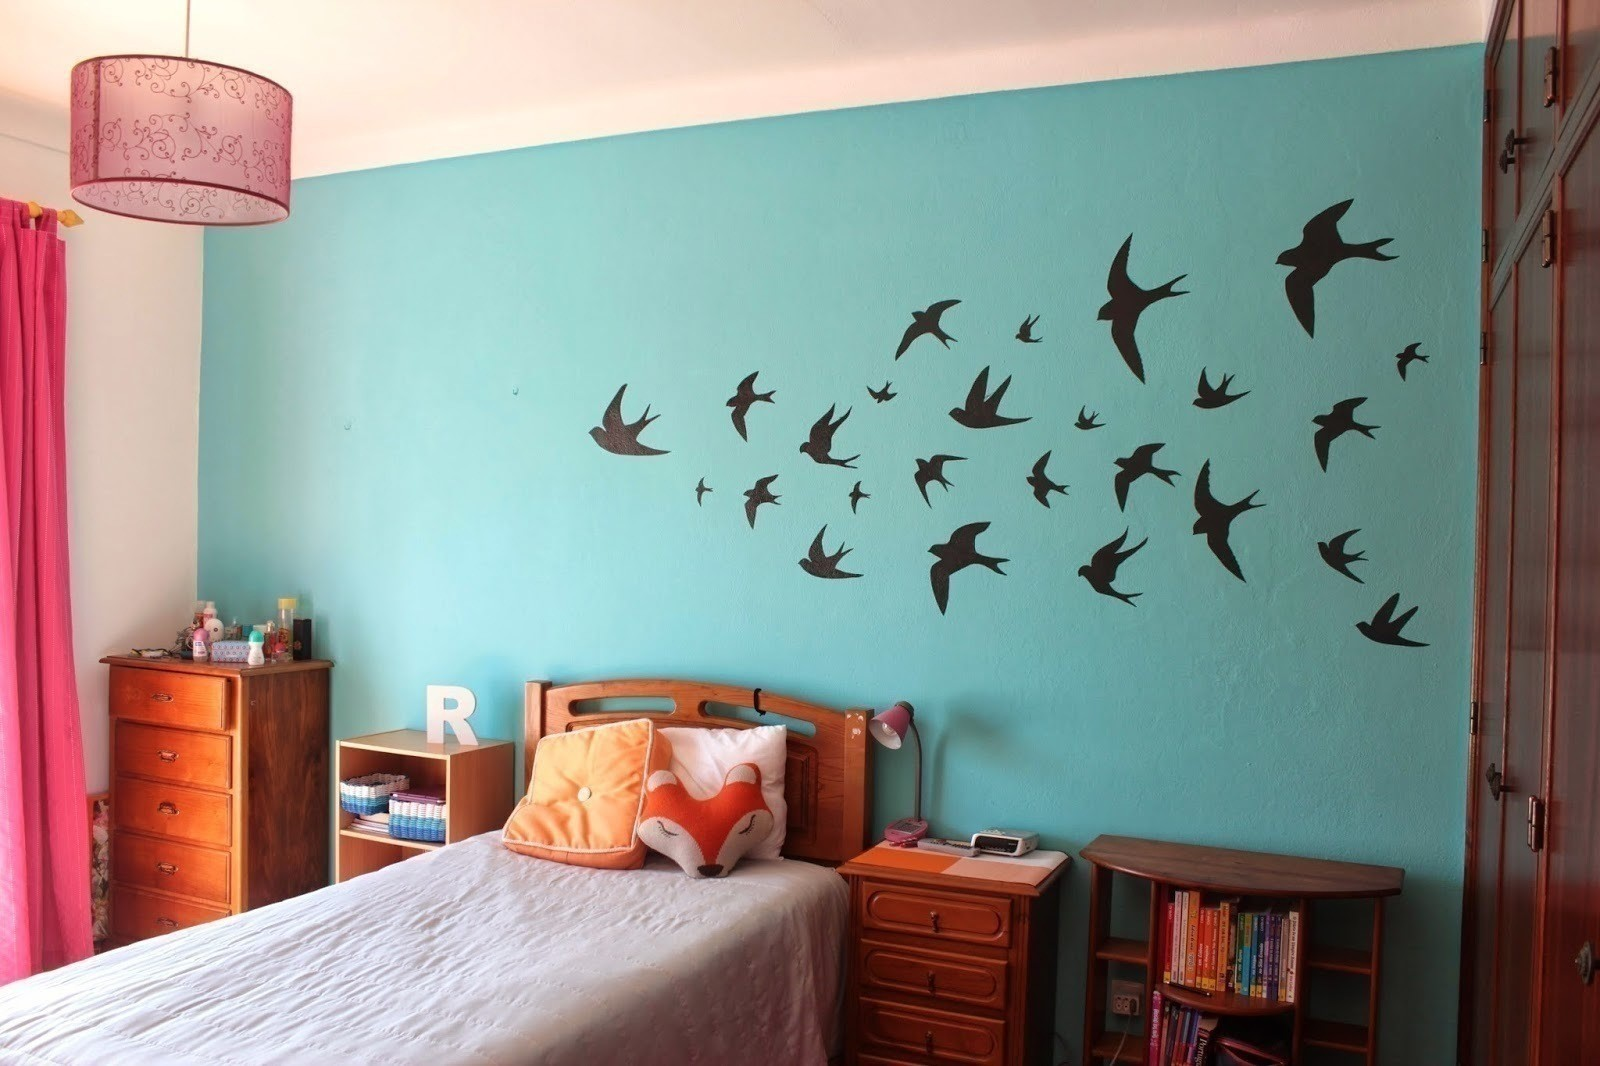 Swallows Wall Decor  How To Make Wallpaper  A Wall